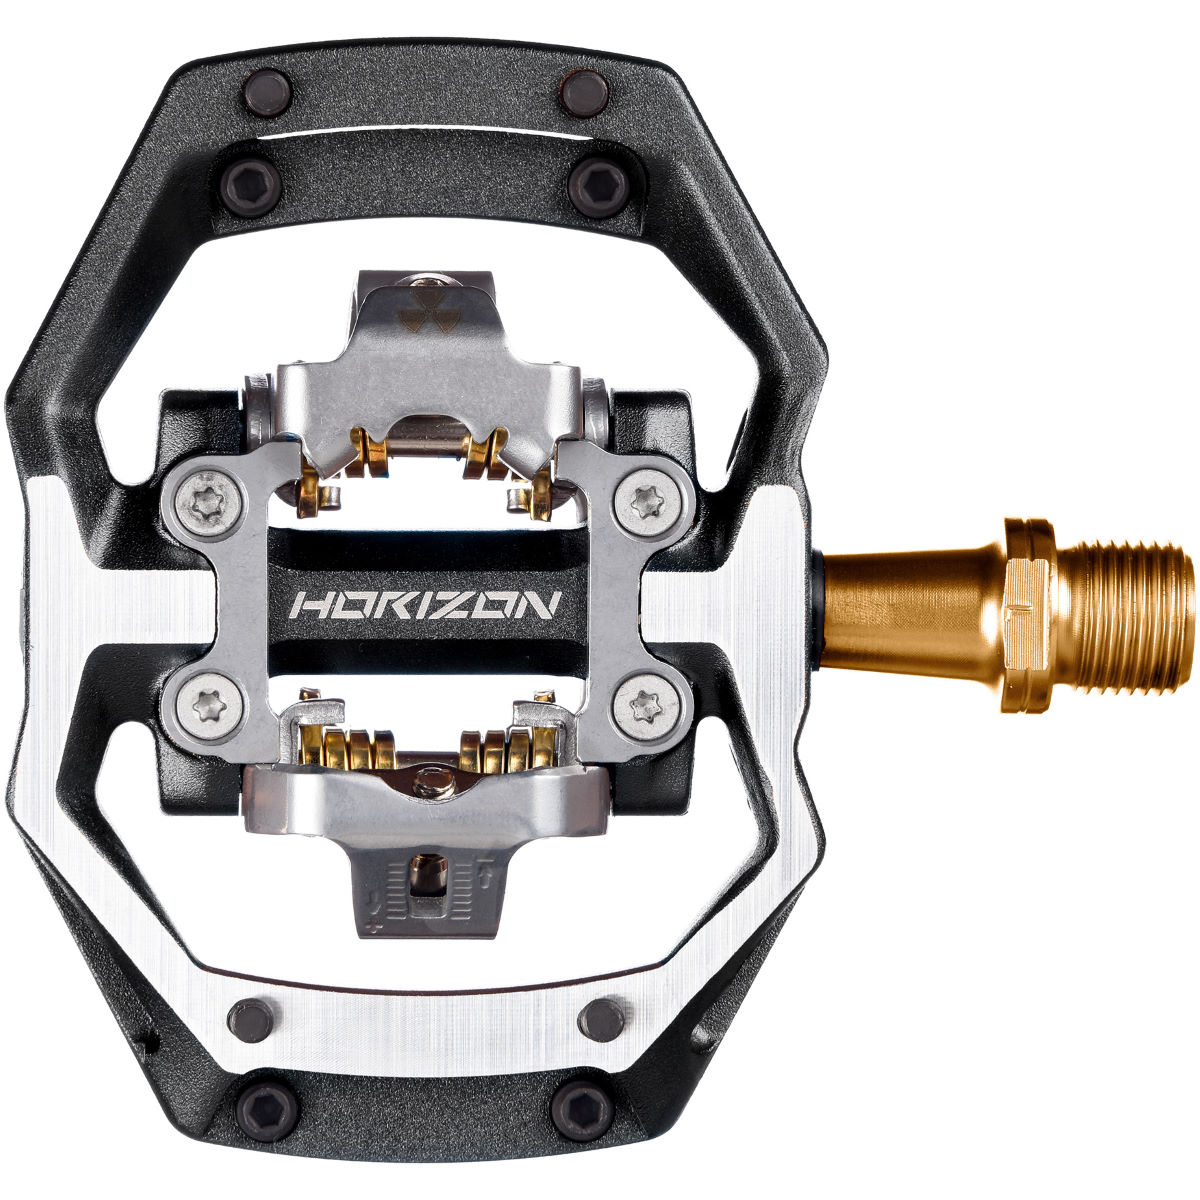 Nukeproof Nukeproof Horizon CS Ti Trail Pedals   Clip-in Pedals